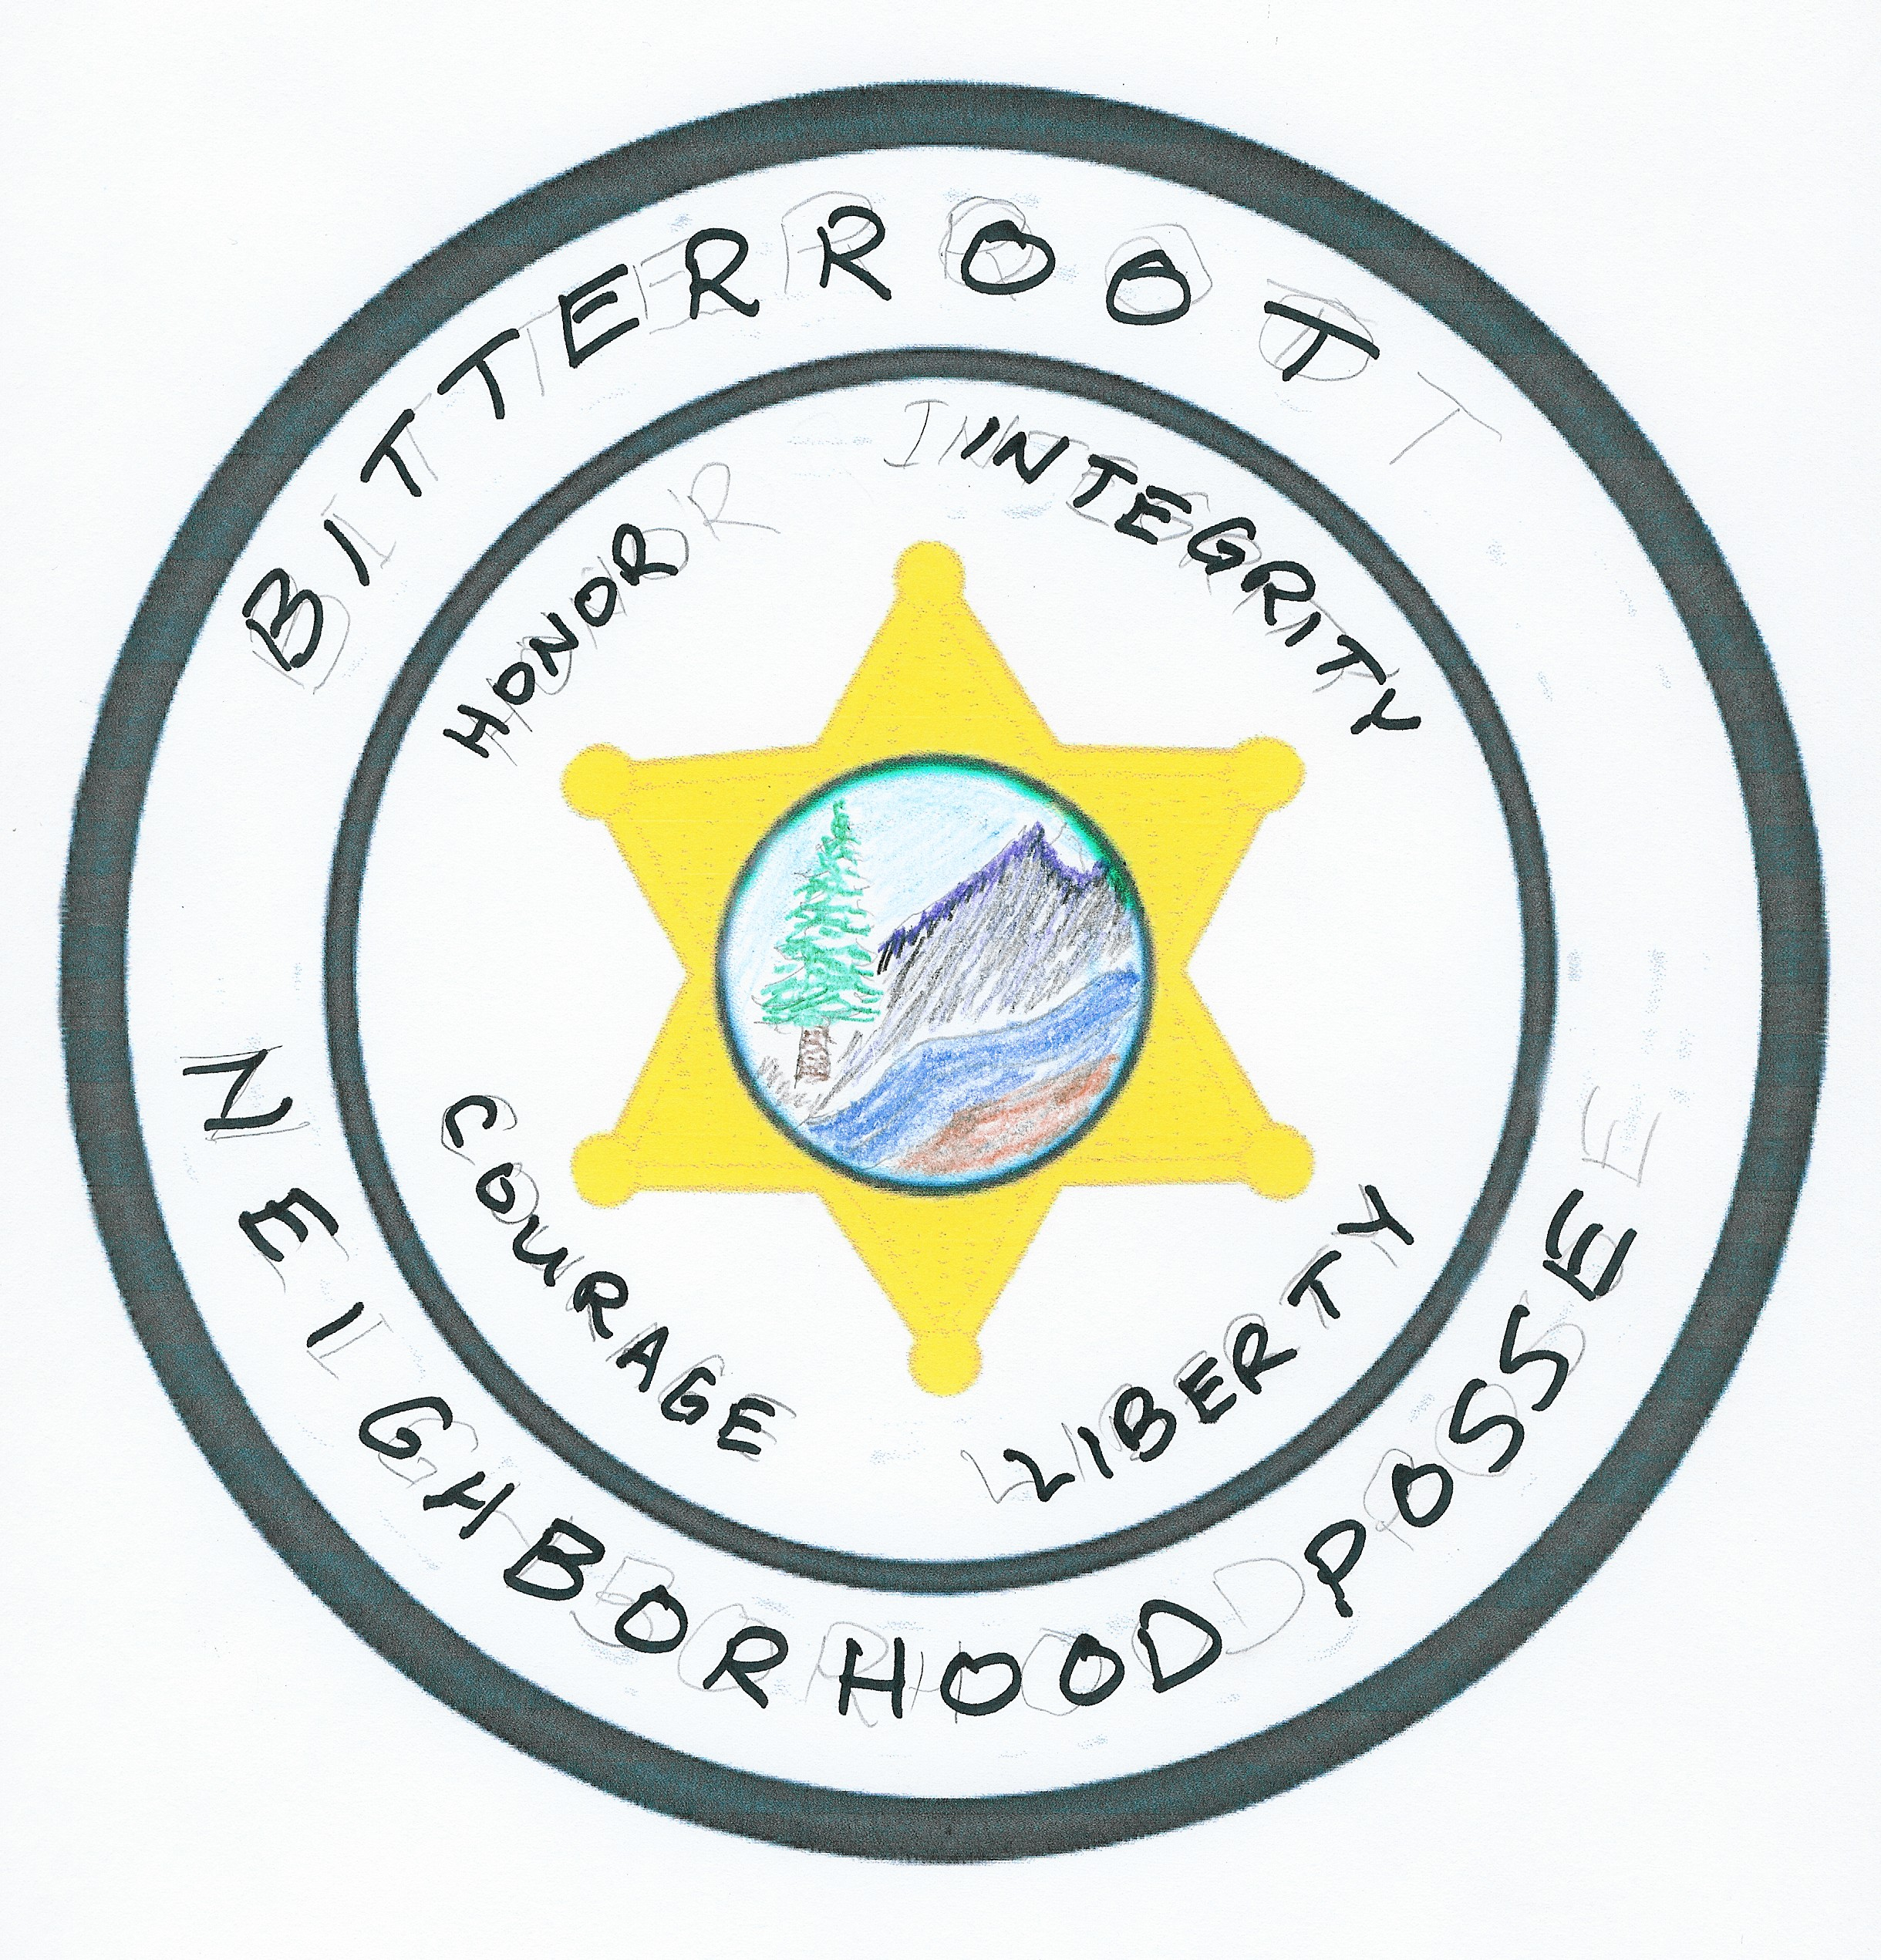 bitterroot neighborhood posse patch 1